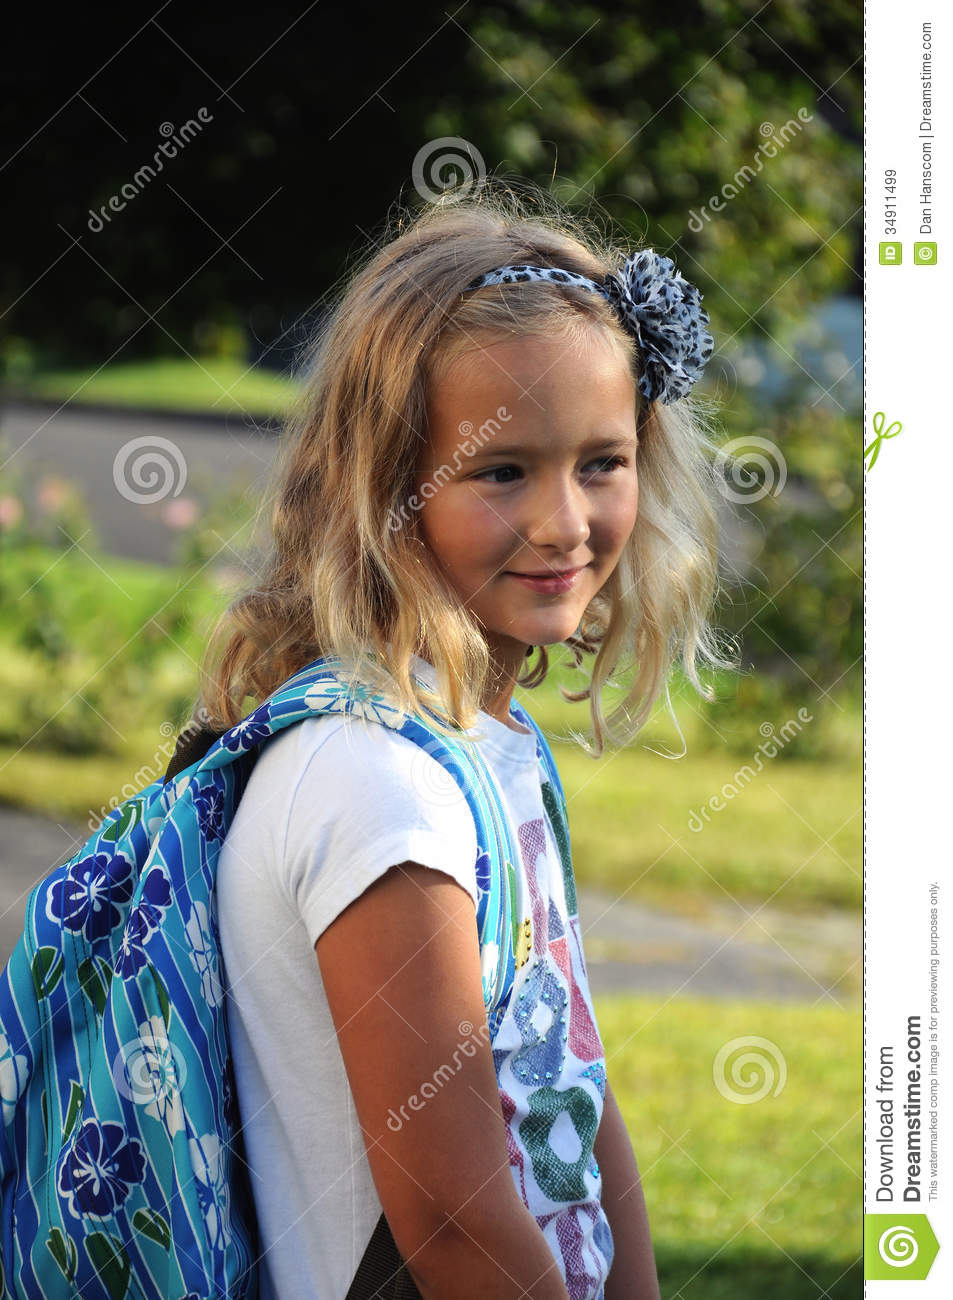 Young girl on the first day of school